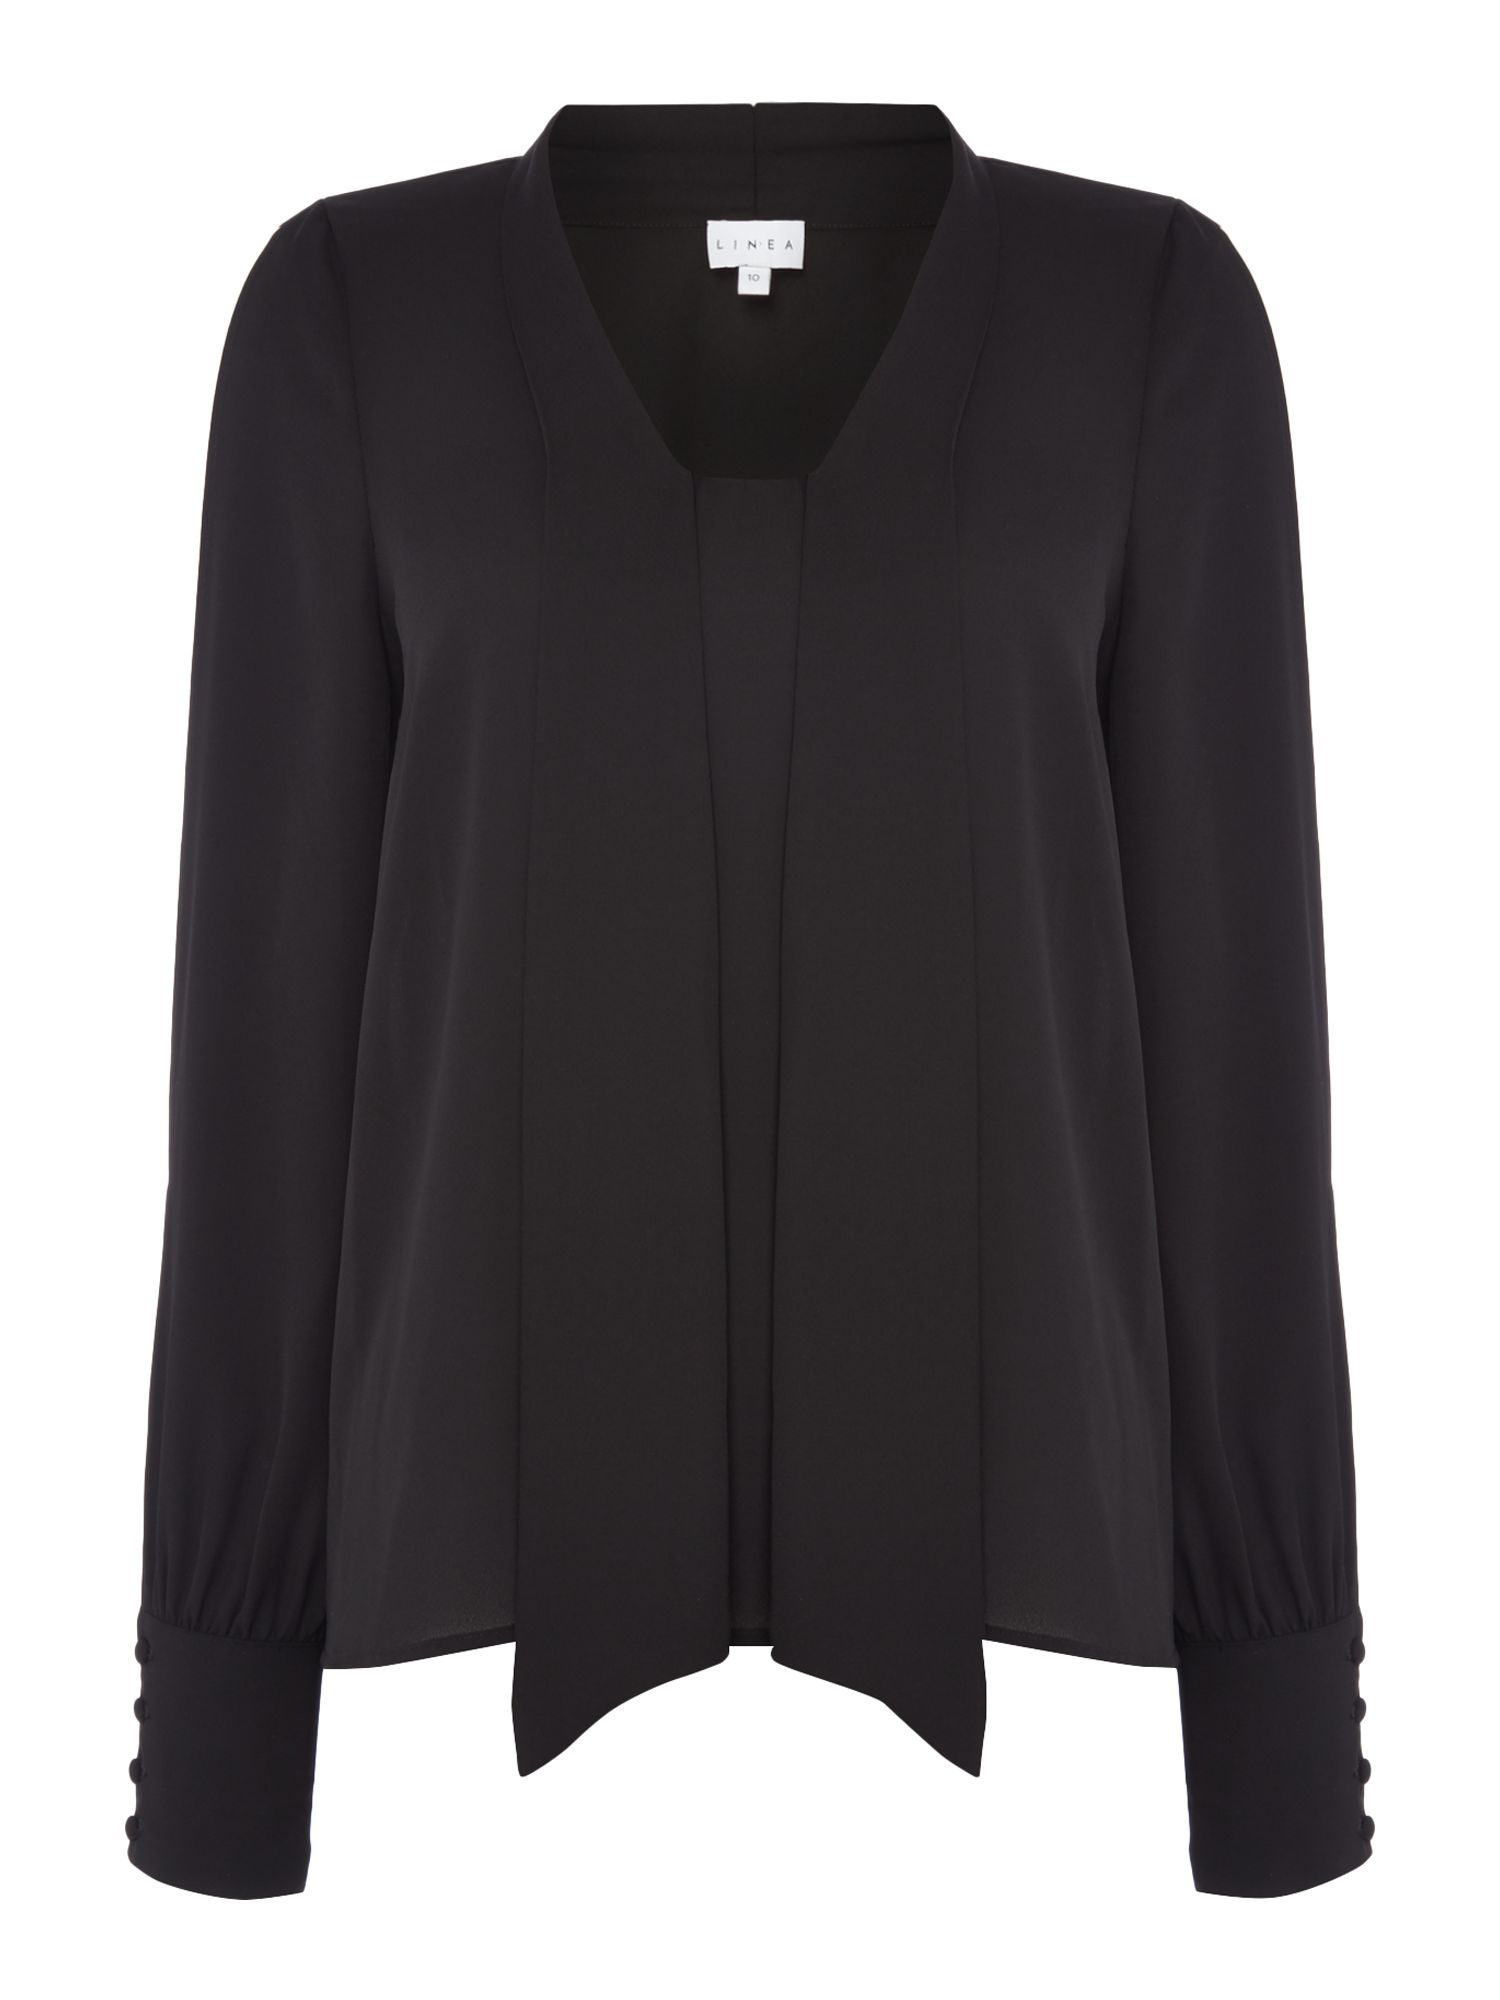 Linea Cold sleeve pussy bow blouse, Black